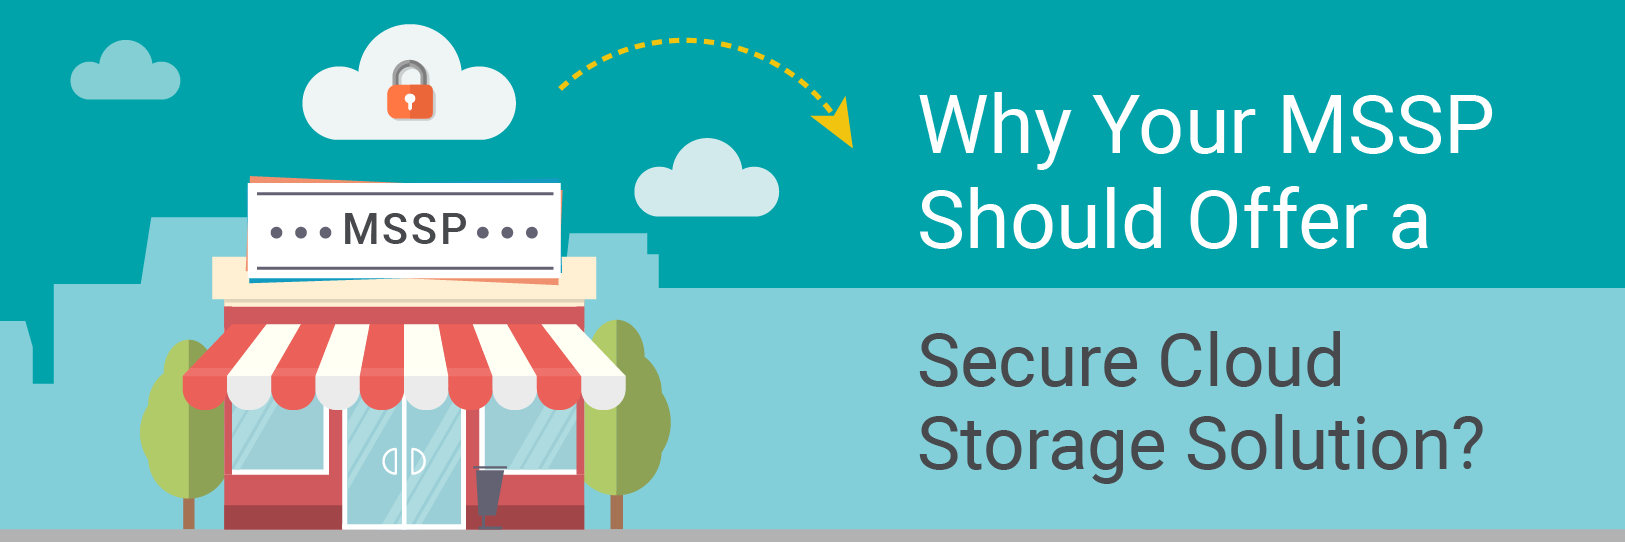 Why Your MSSP Should Offer a Secure Cloud Storage Solution?